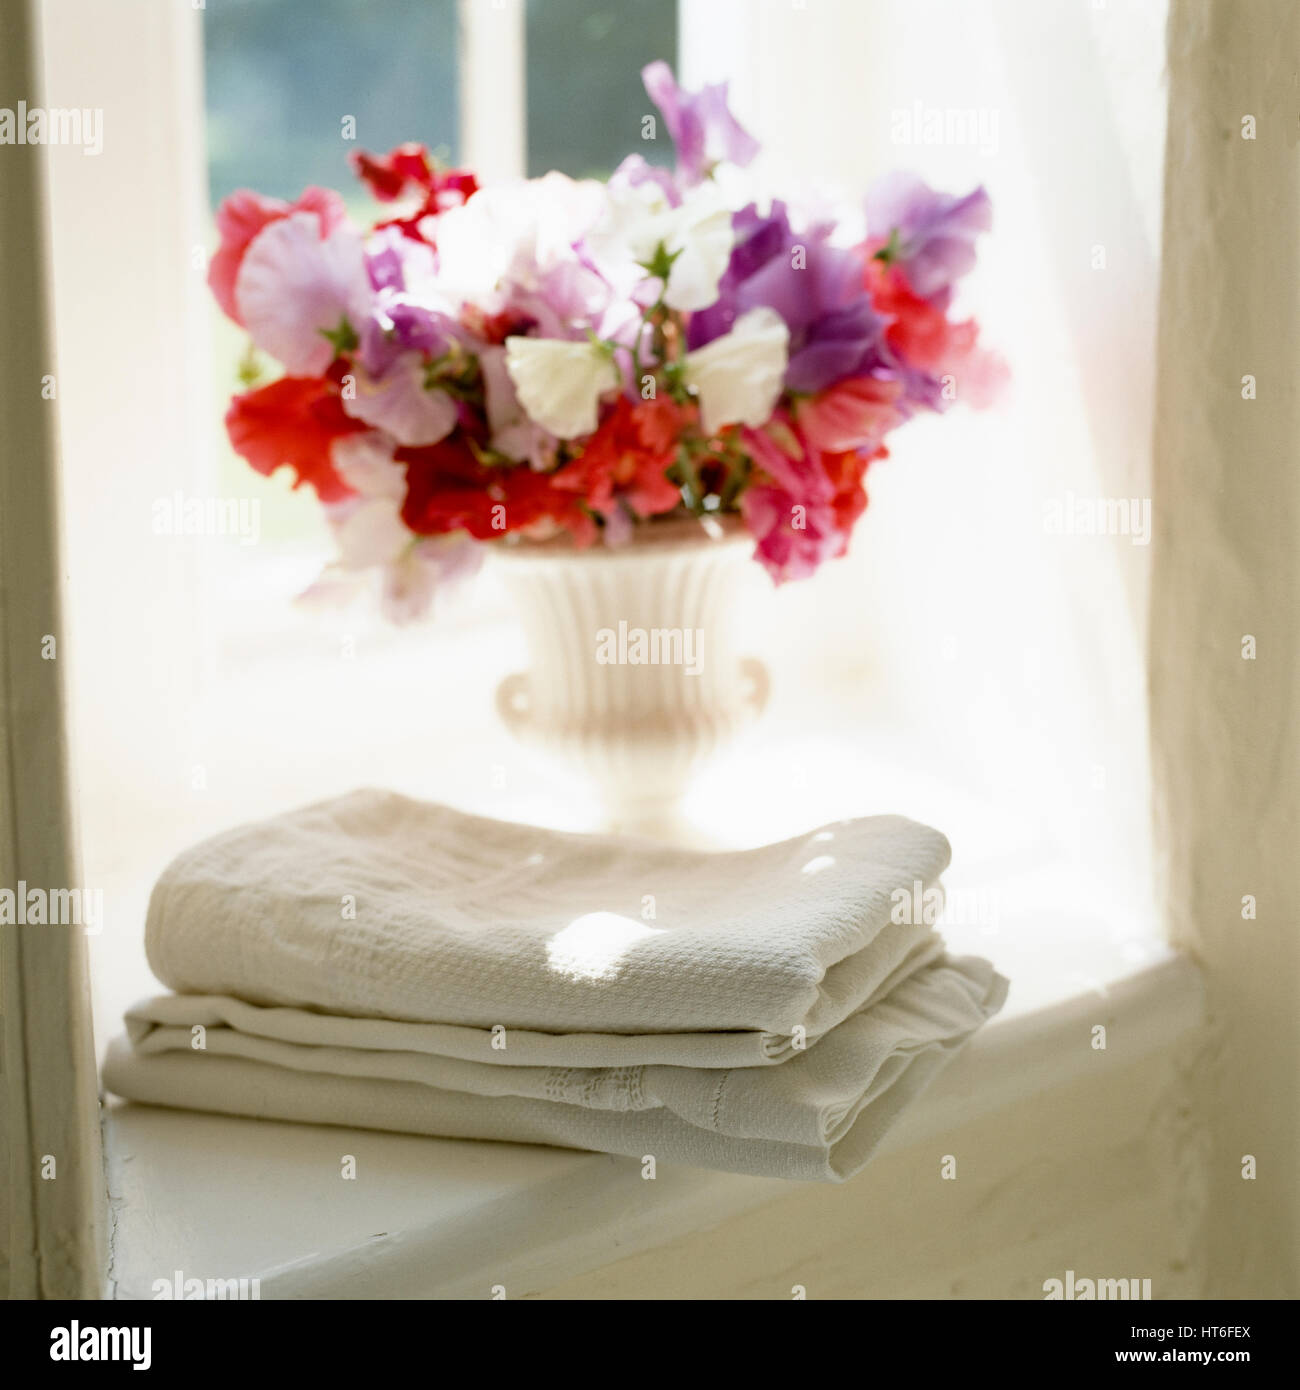 Towels and vase of flowers on windowsill. Stock Photo